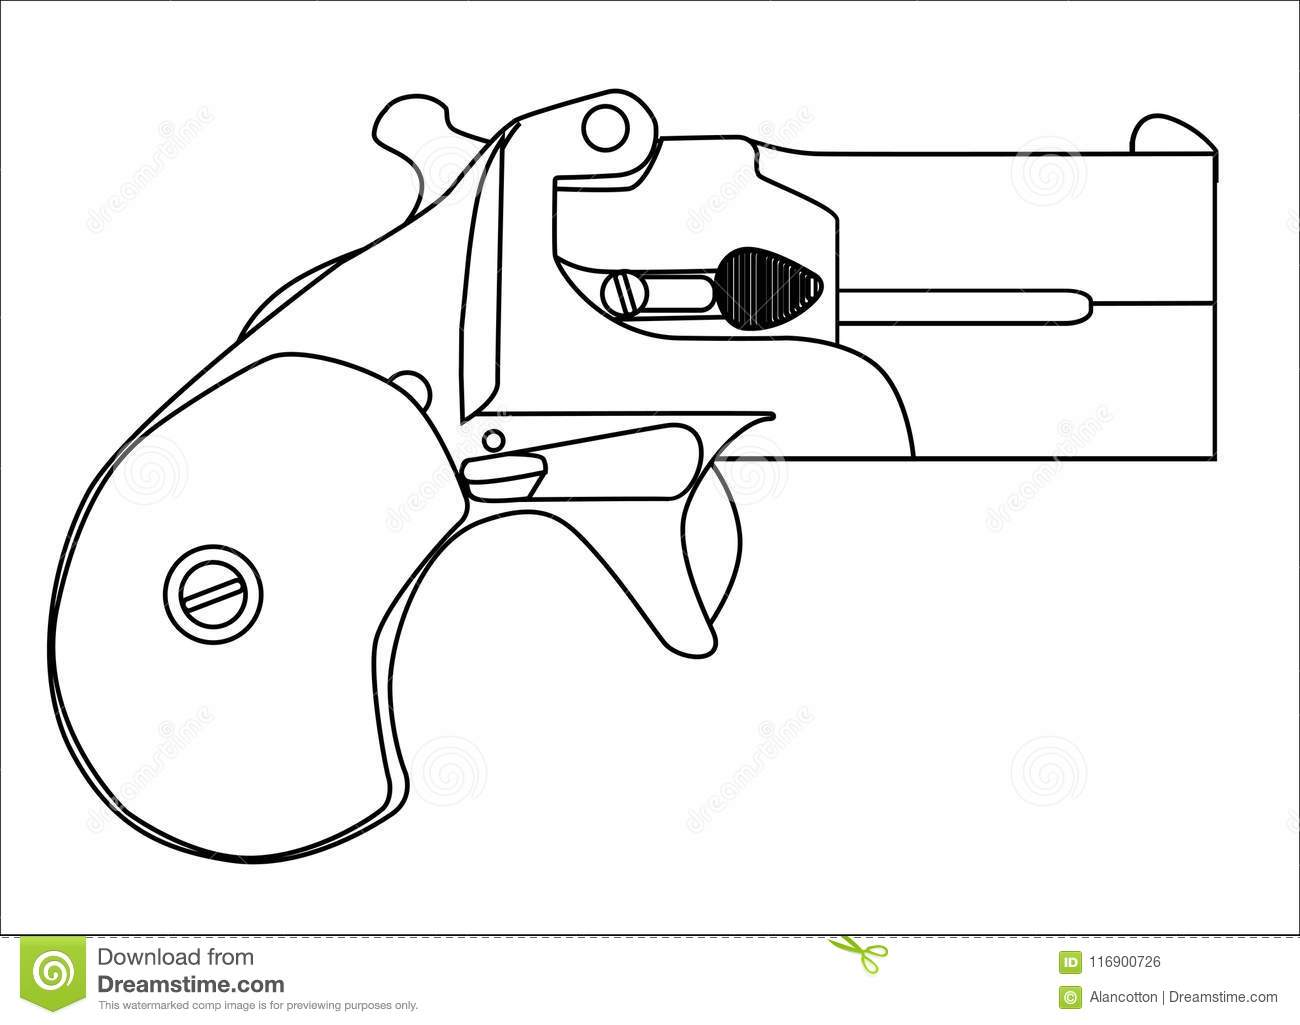 Small Derringer Pistol Isolated Line Drawing Stock Vector